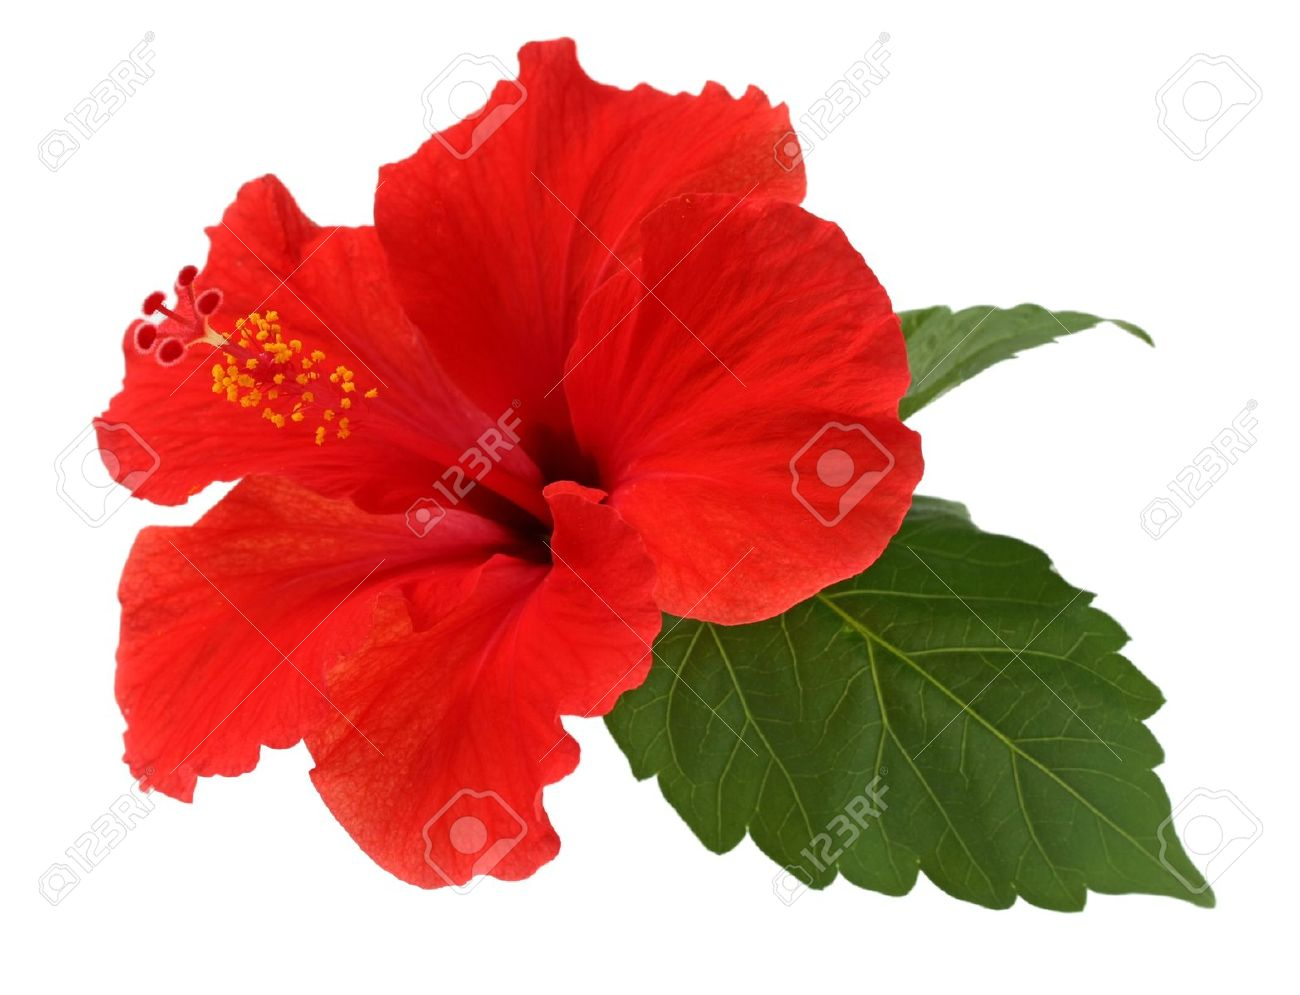 A Red Hibiscus Flower On White Background Stock Photo Picture And